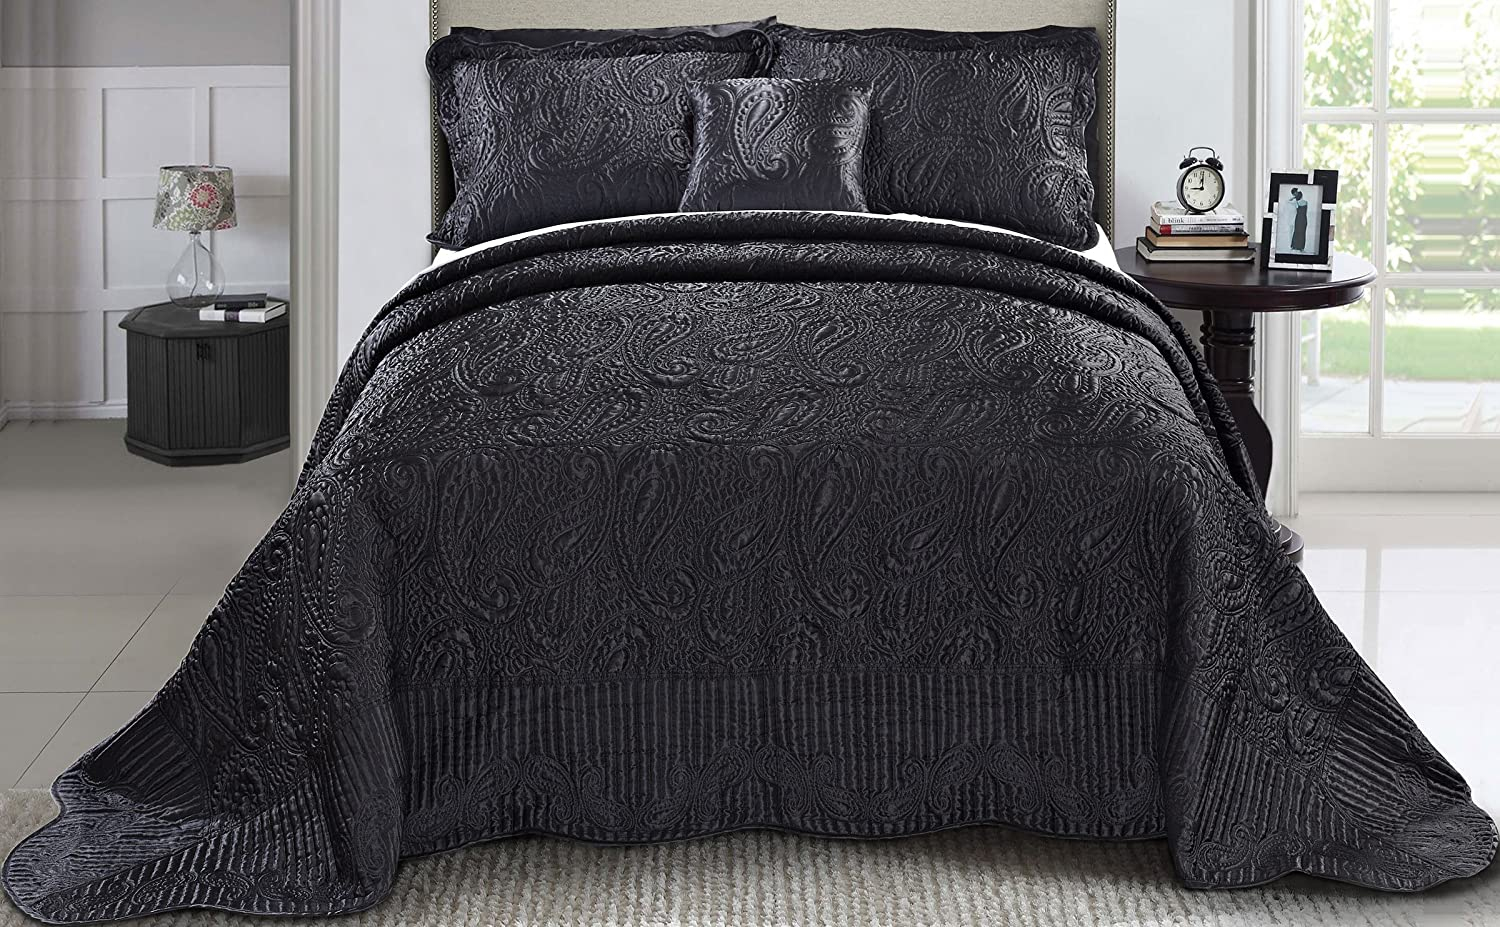 quilt queen set size cover pleat florence pi pintuck wh black doona king duvet